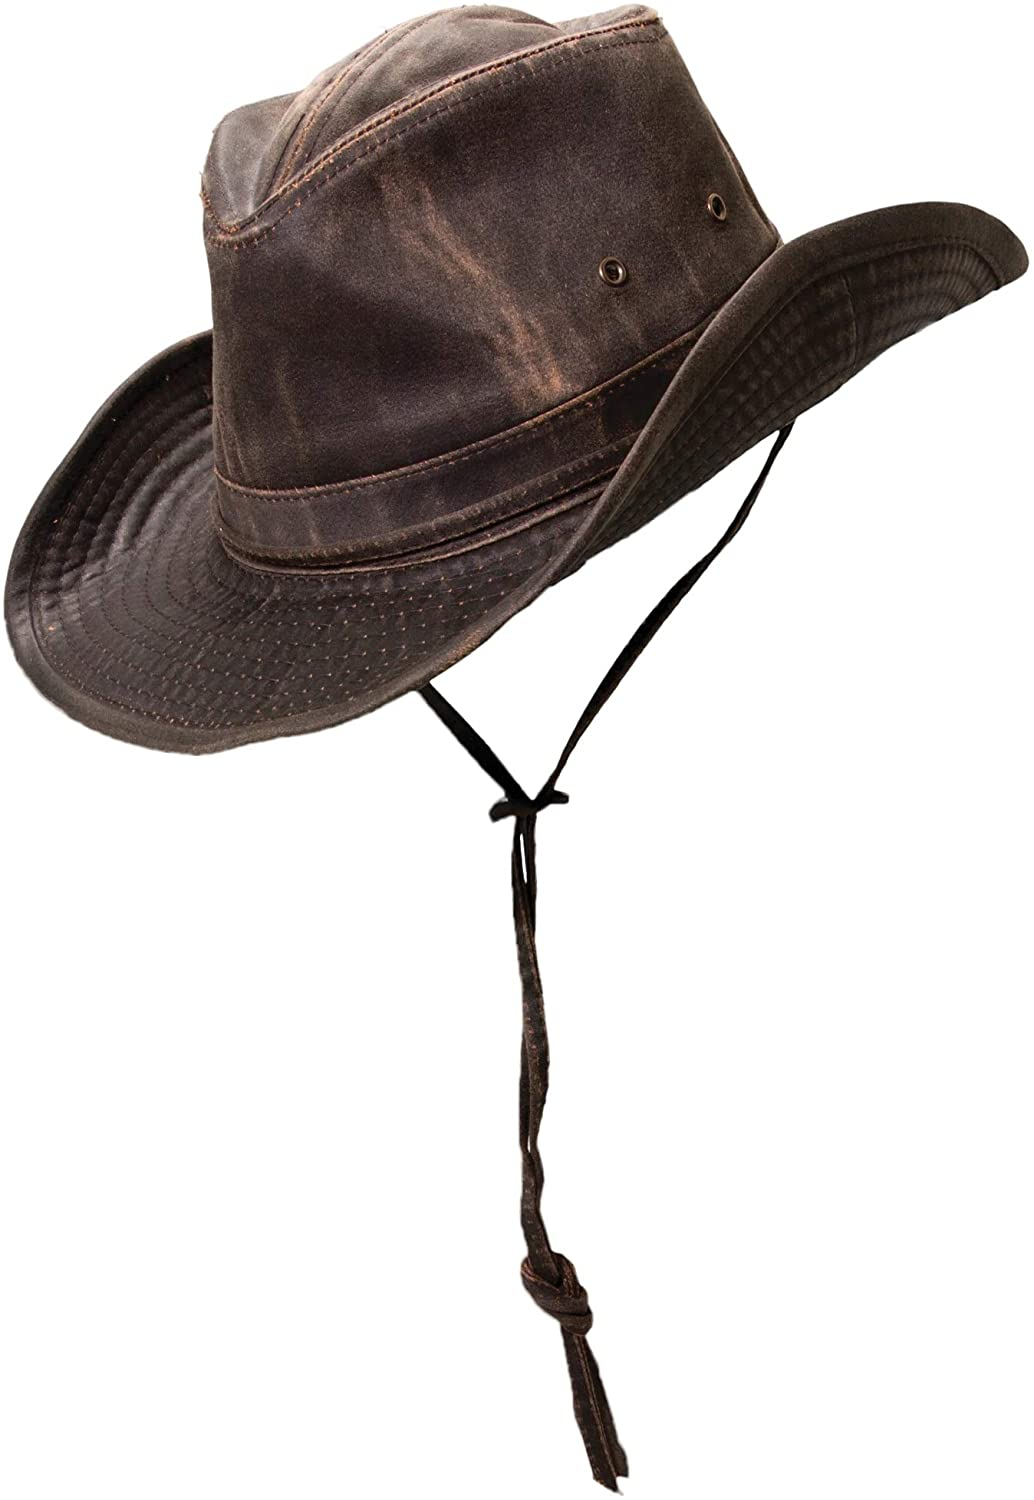 Dorfman Pacific Men's Outback Chin with Hat 2021 model low-pricing Cord